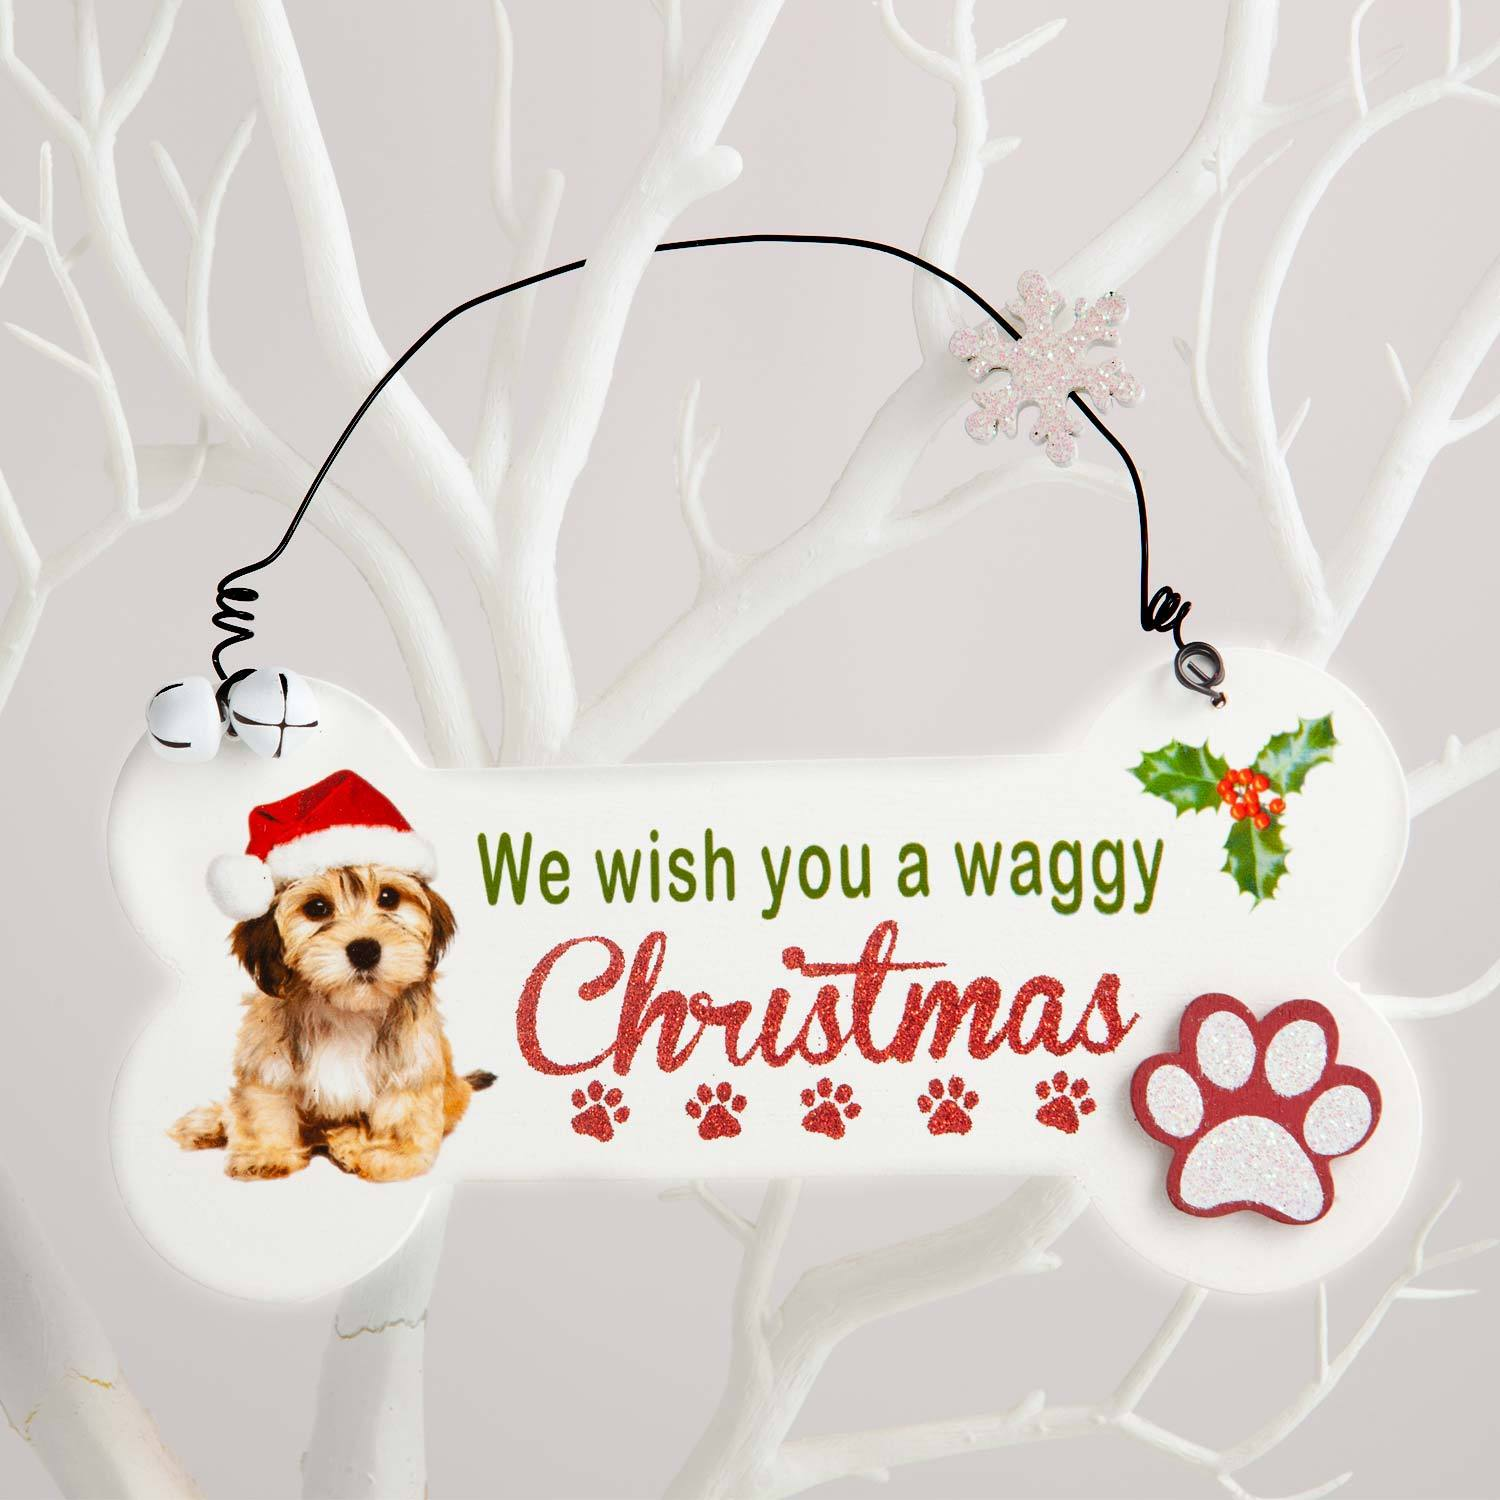 Dog Krazy Gifts - Waggy Christmas Bone Sign - part of the Christmas range of Dog Themed Gifts available from DogKrazyGifts.co.uk